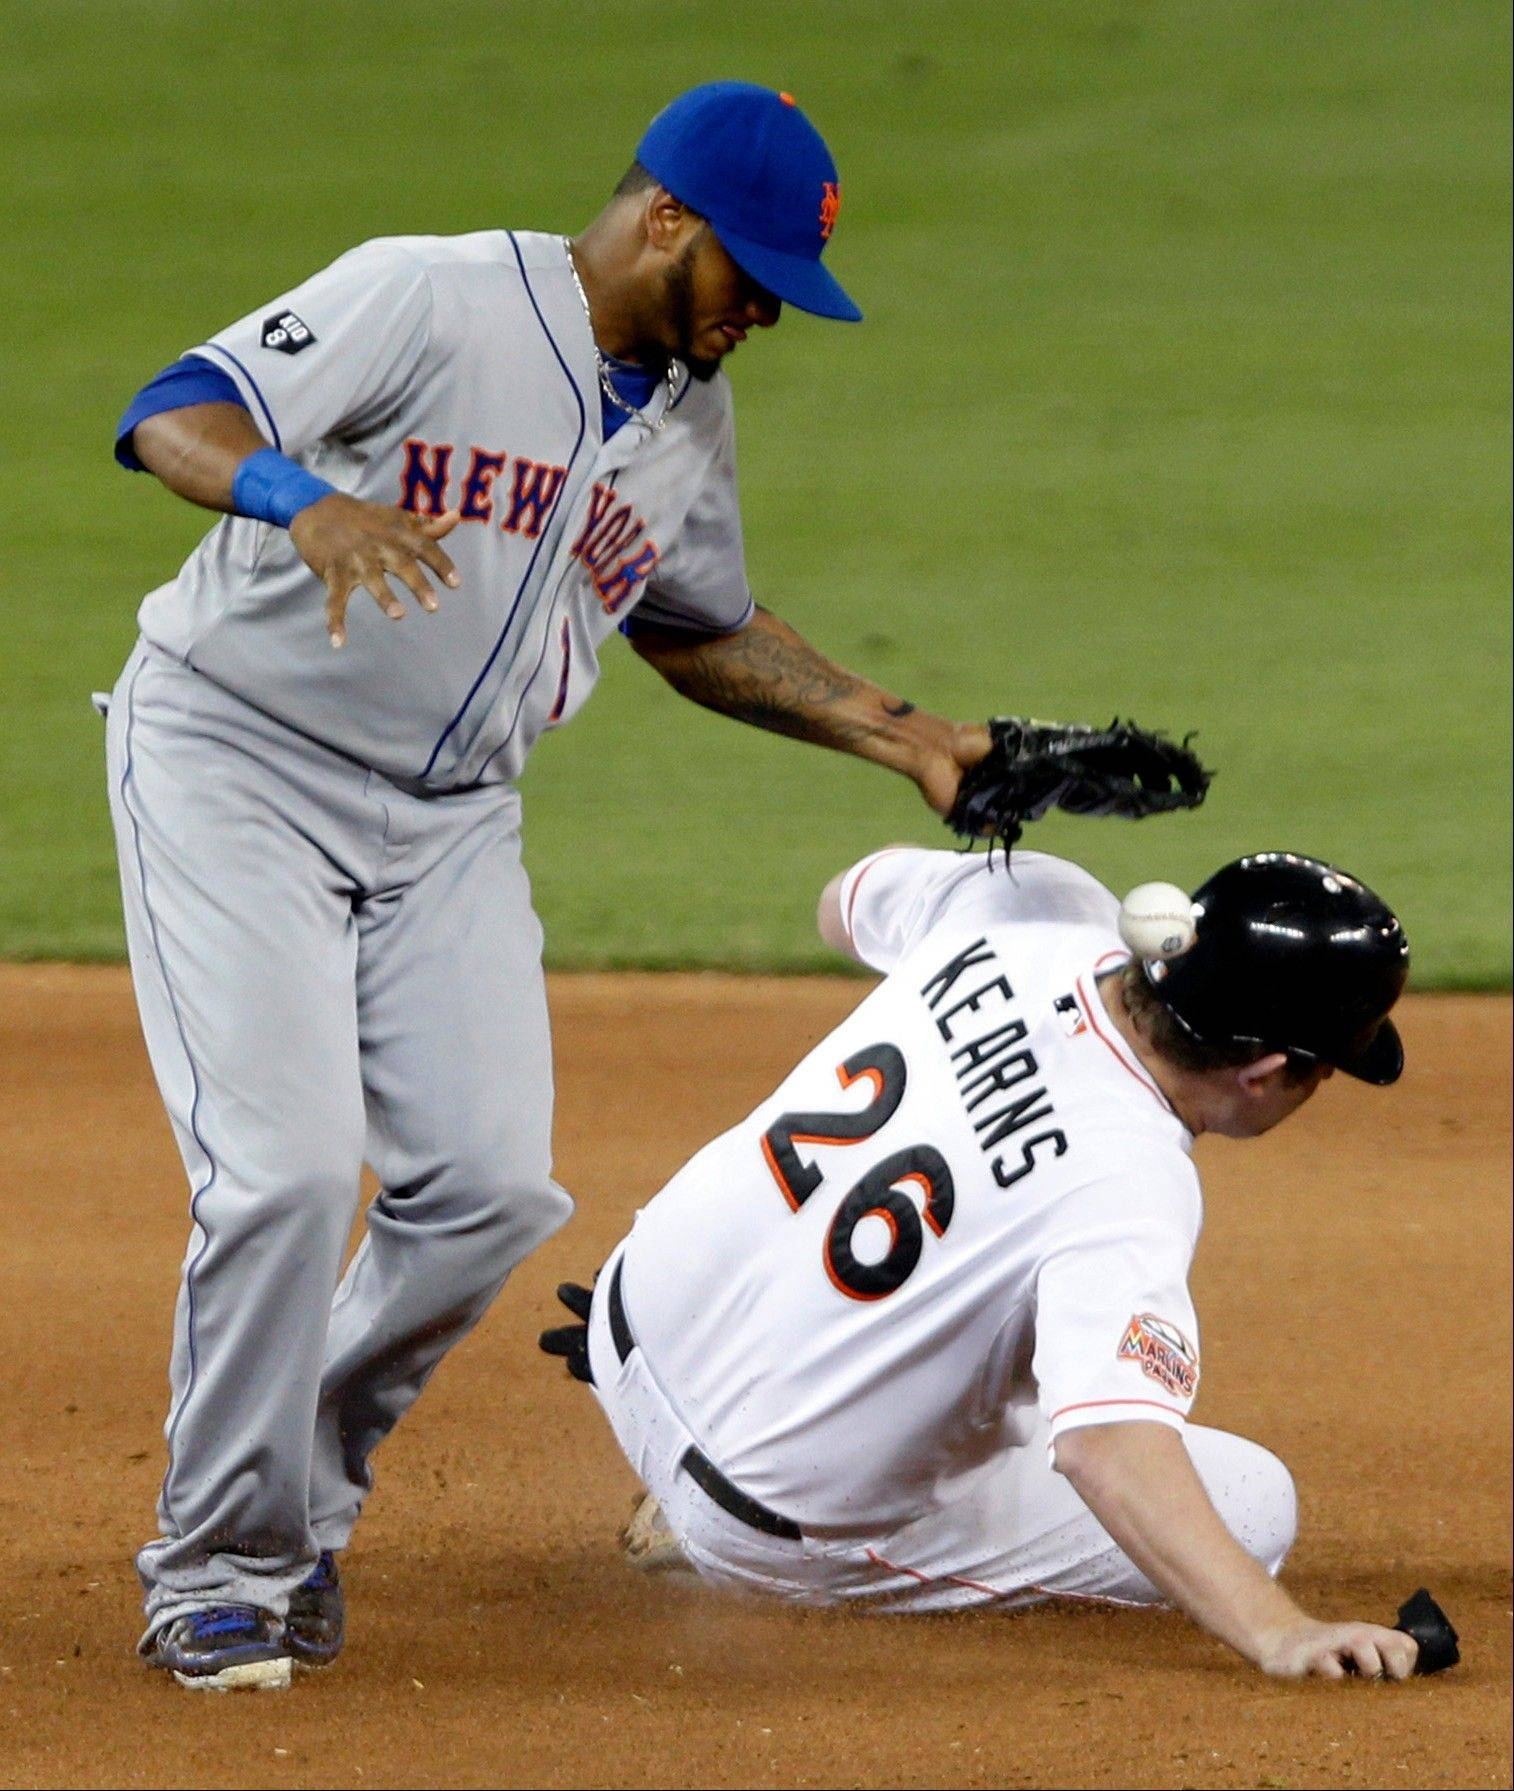 The Marlins' Austin Kearns steals second base as New York Mets second baseman Jordany Valdespin drops the ball in the 10th inning Tuesday in Miami.